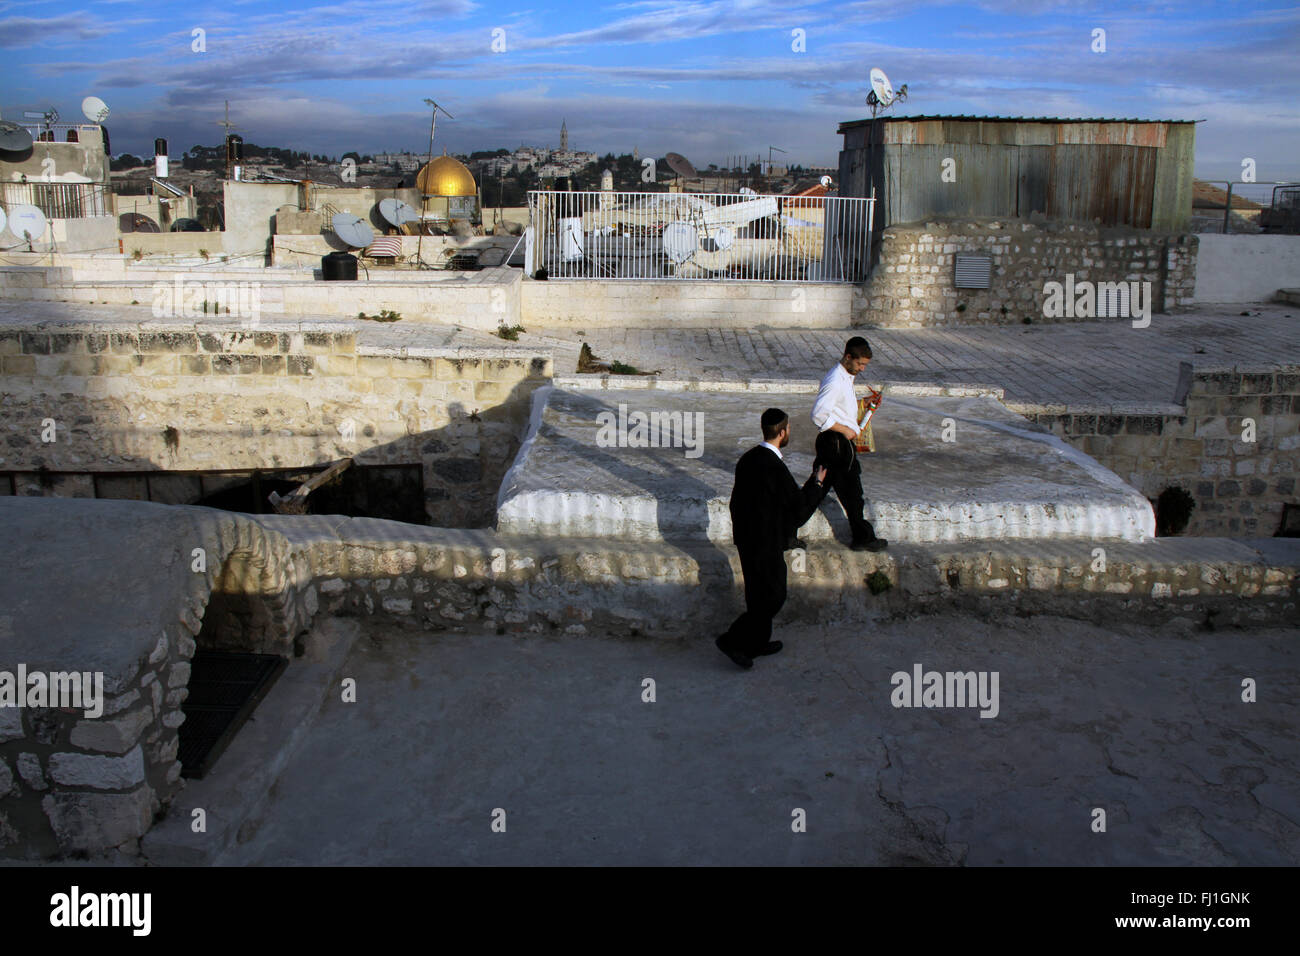 Two Jewish men walk by sunset on the roofs of Jerusalem old city , Al-Aqsa Mosque in the distance - Stock Image